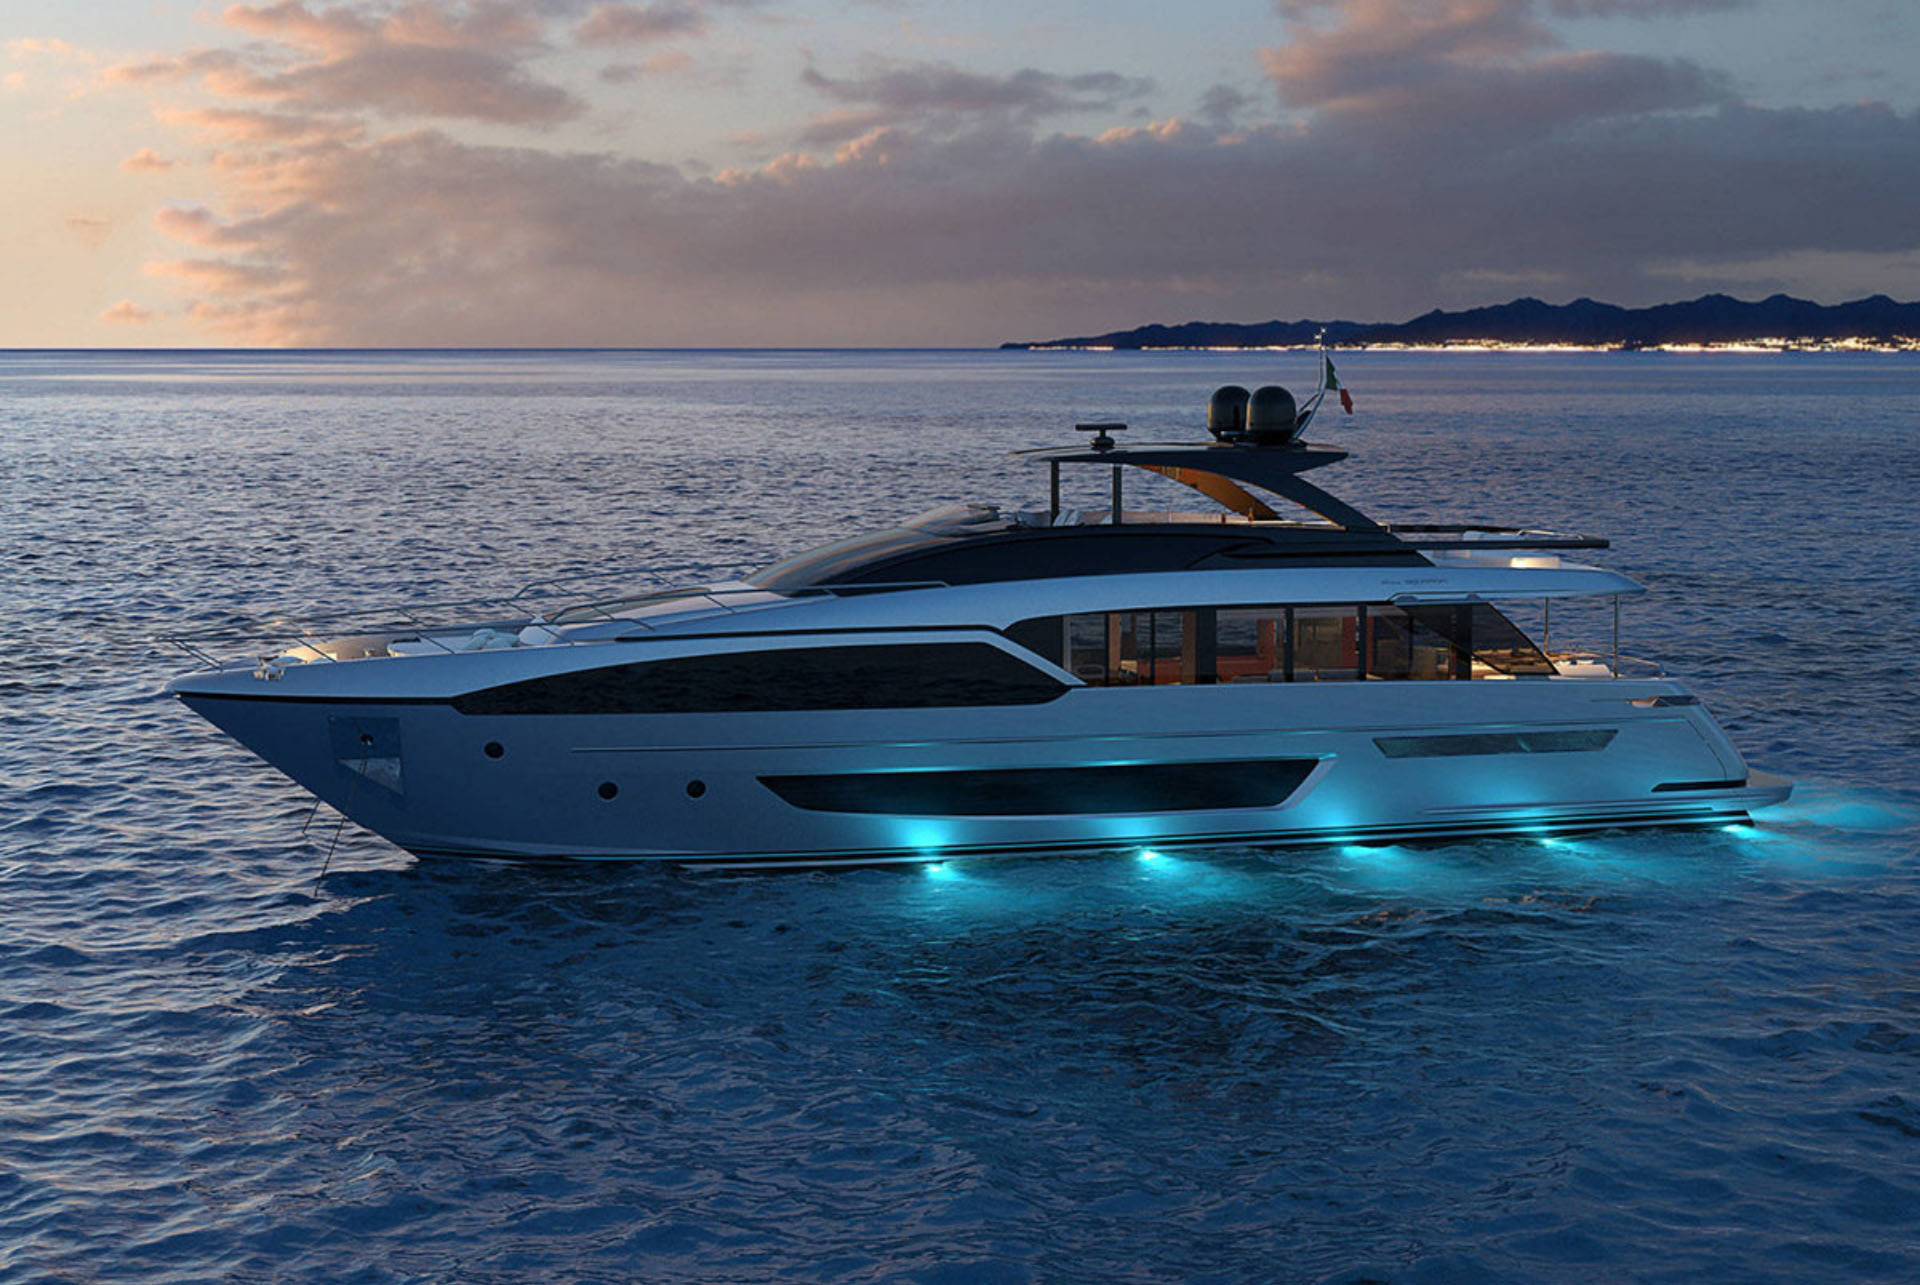 Riva 90 by Fort Lauderdale: Design unveiled